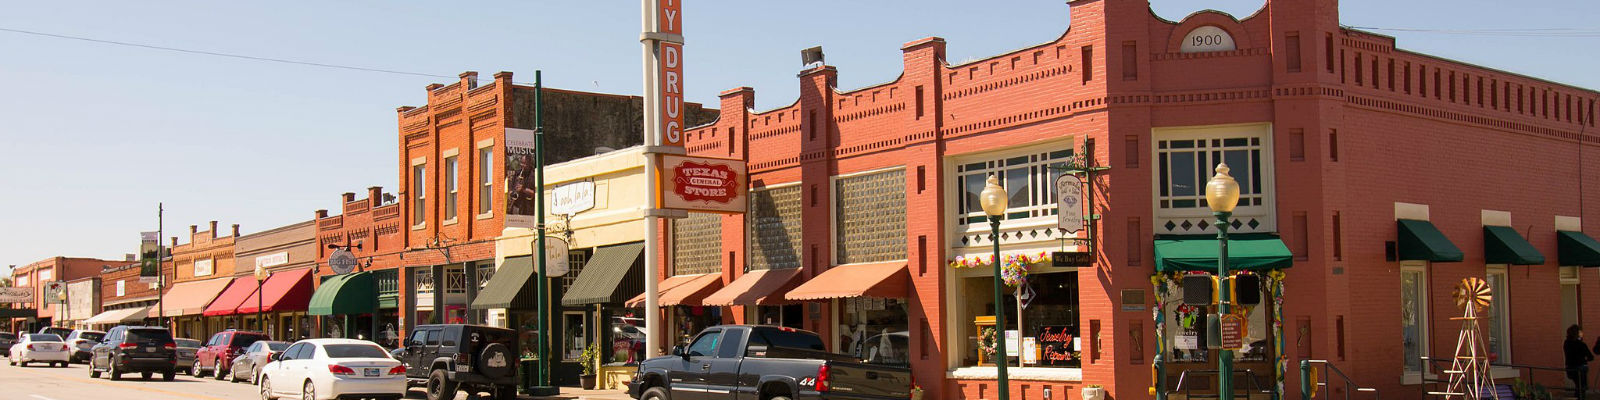 This is an image of downtown Grapevine Texas where ASTA-USA provides professional translation services.